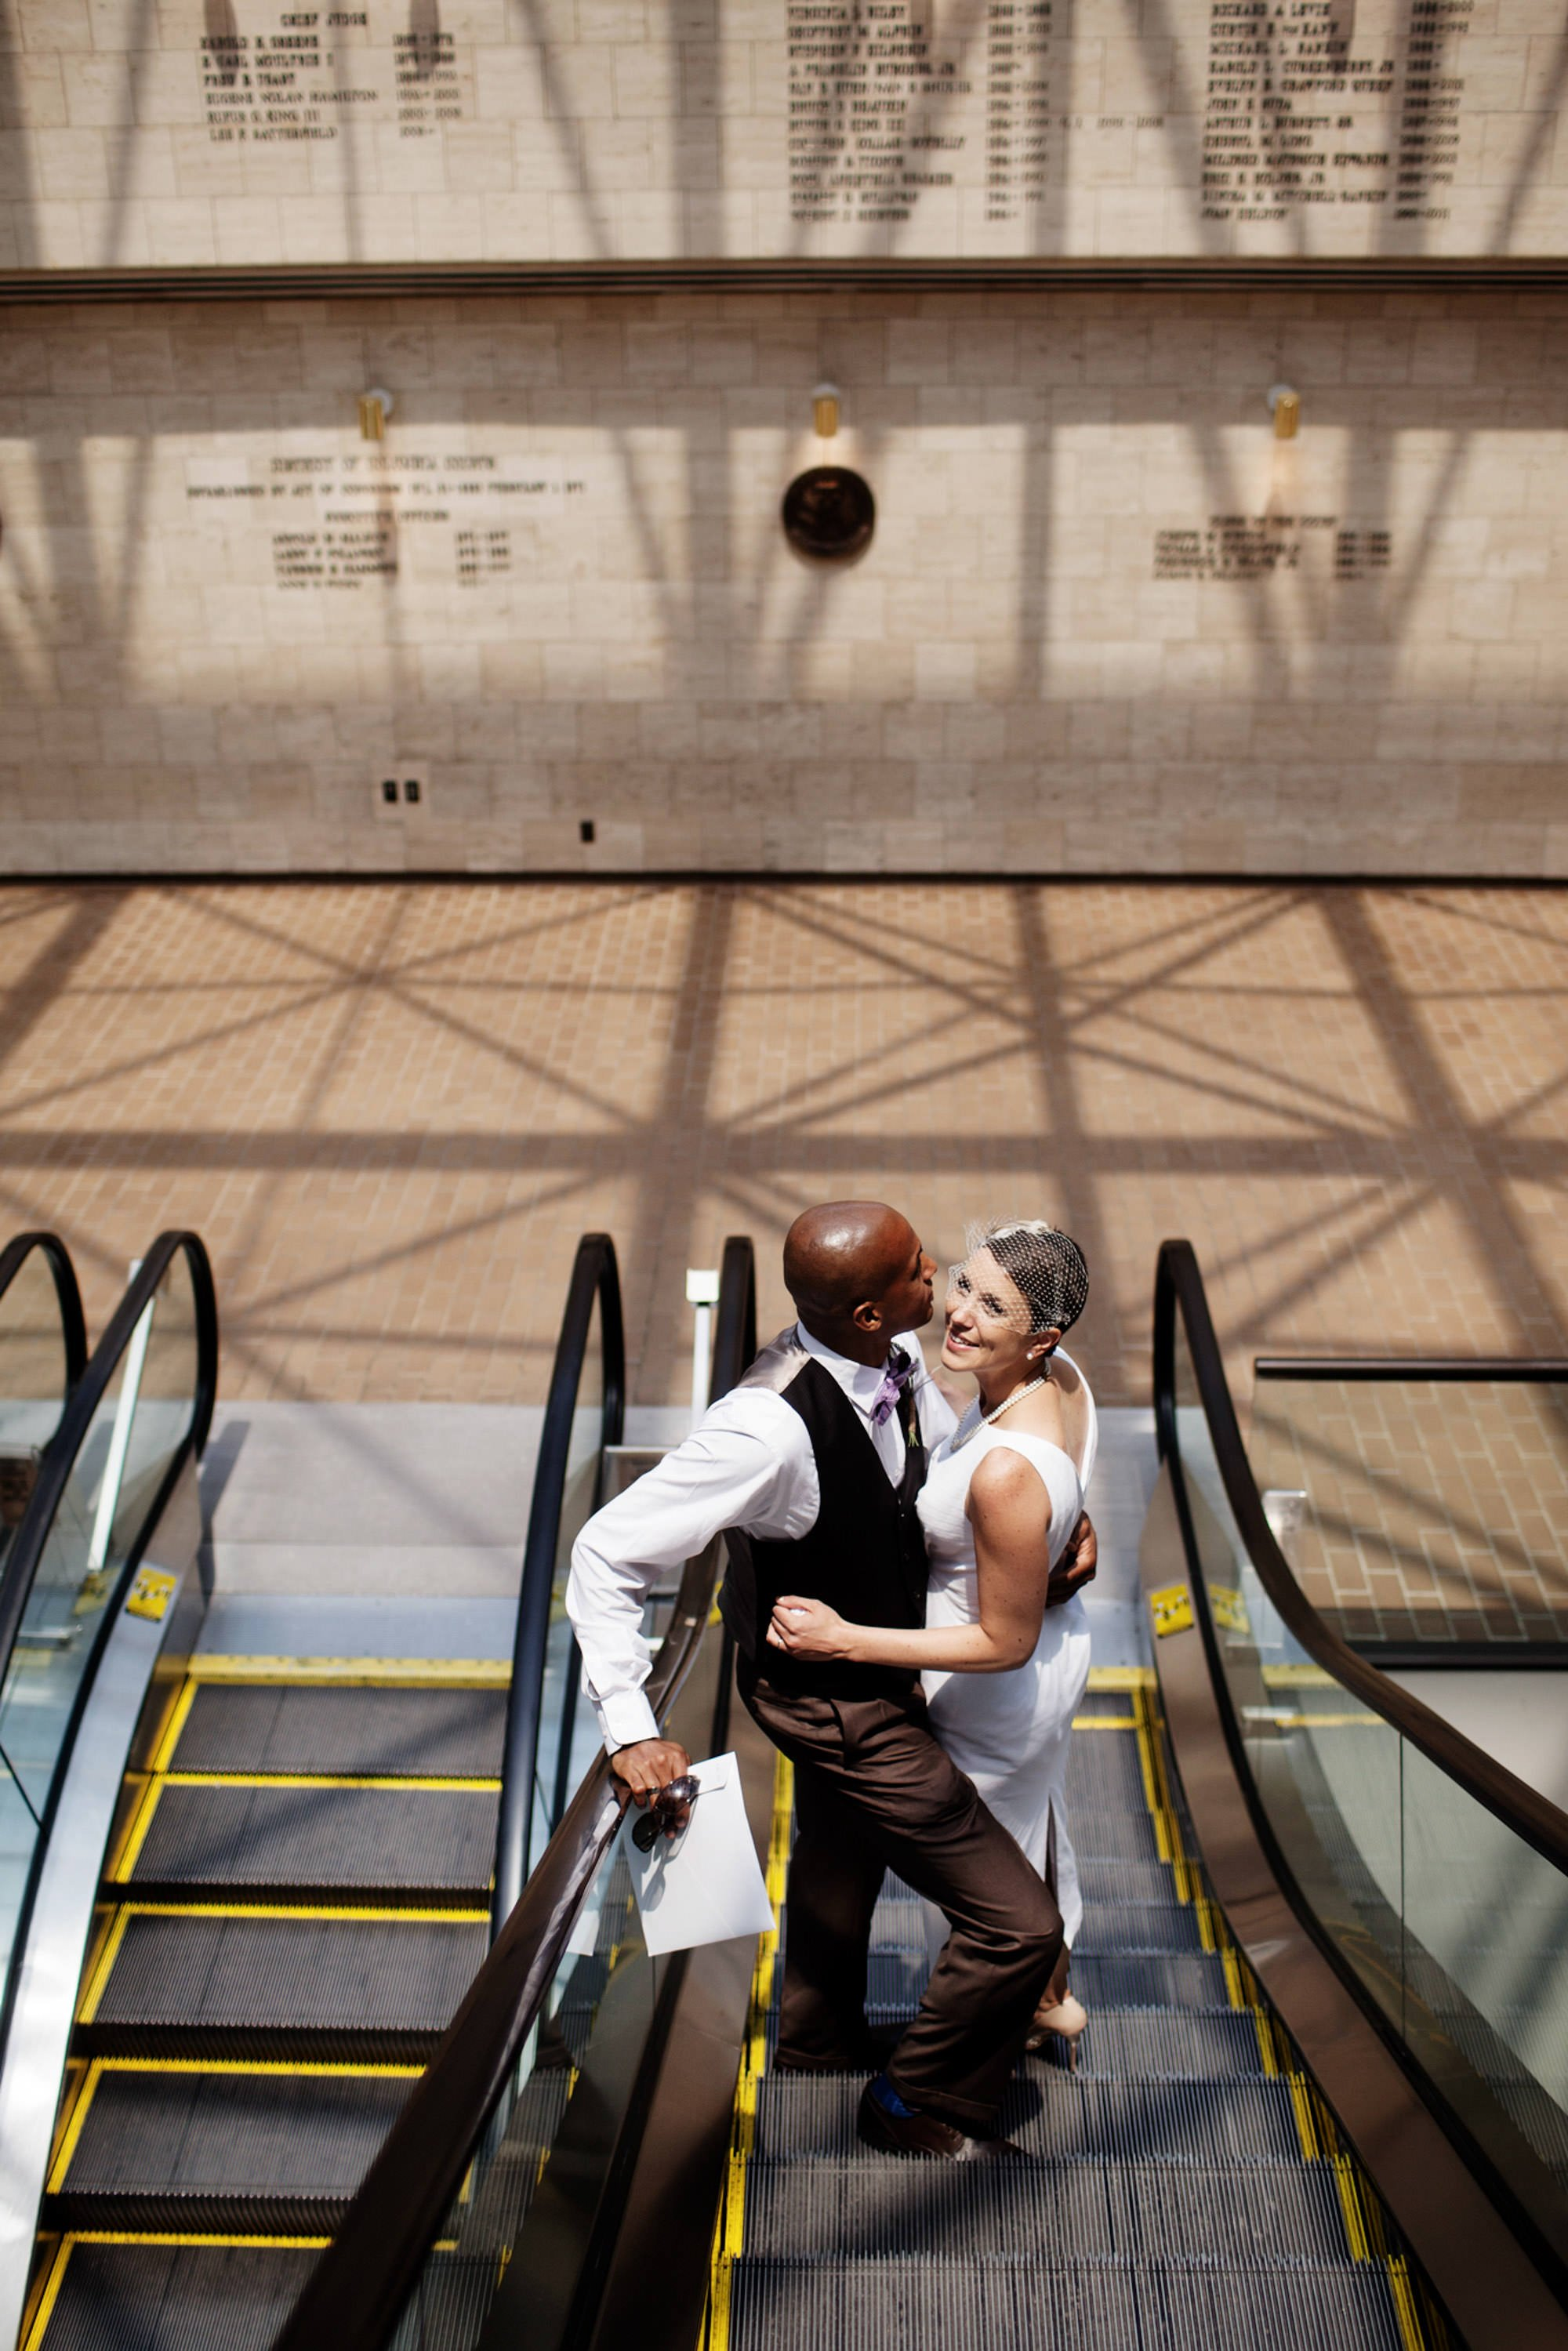 The bride and groom ride down the escalator following their DC Courthouse wedding ceremony.